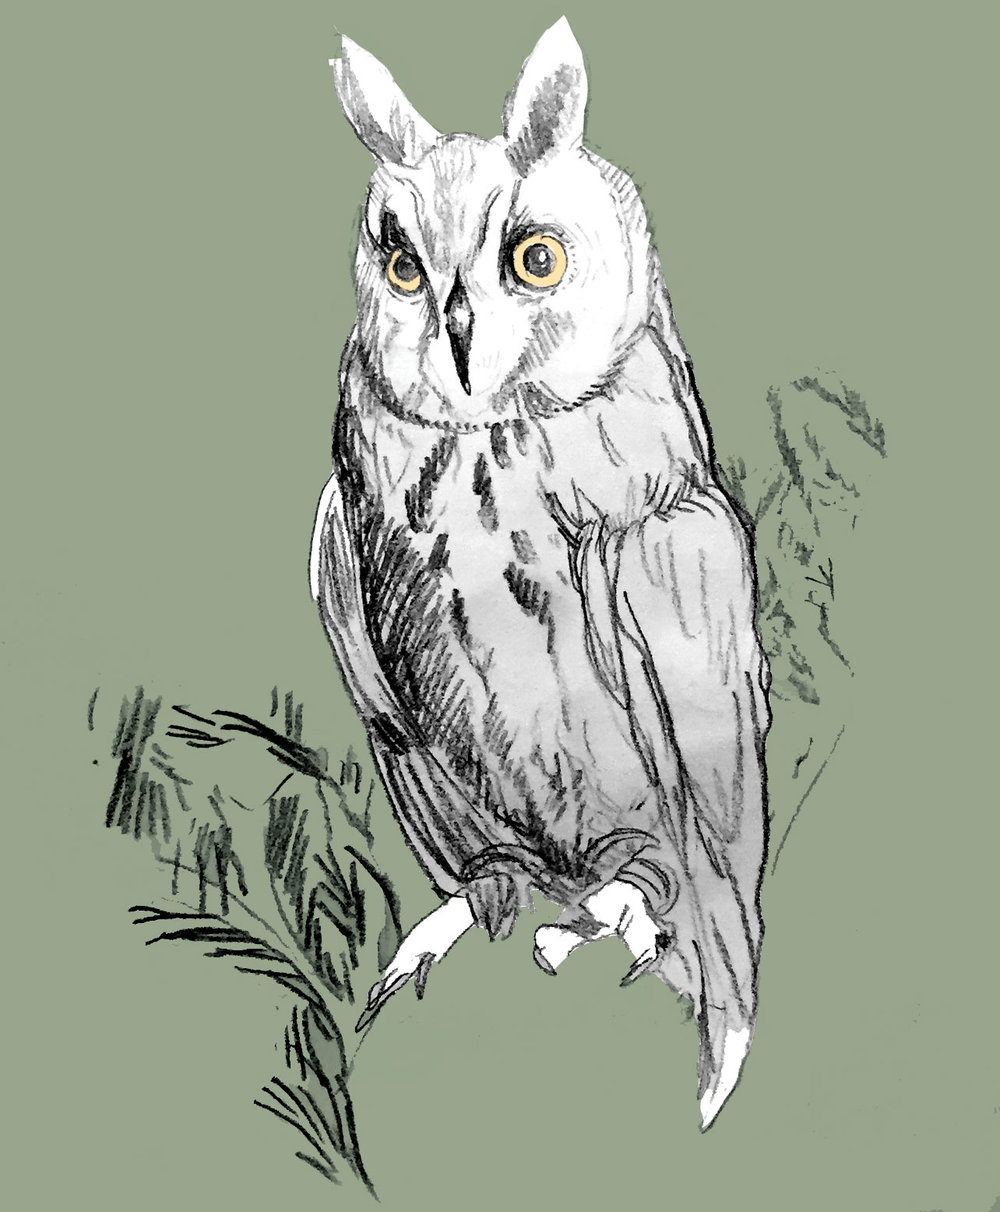 The variety of owl we saw was a long-eared owl. They're actually super-rare to see; they're very secretive and small and camouflage well. A special bird.